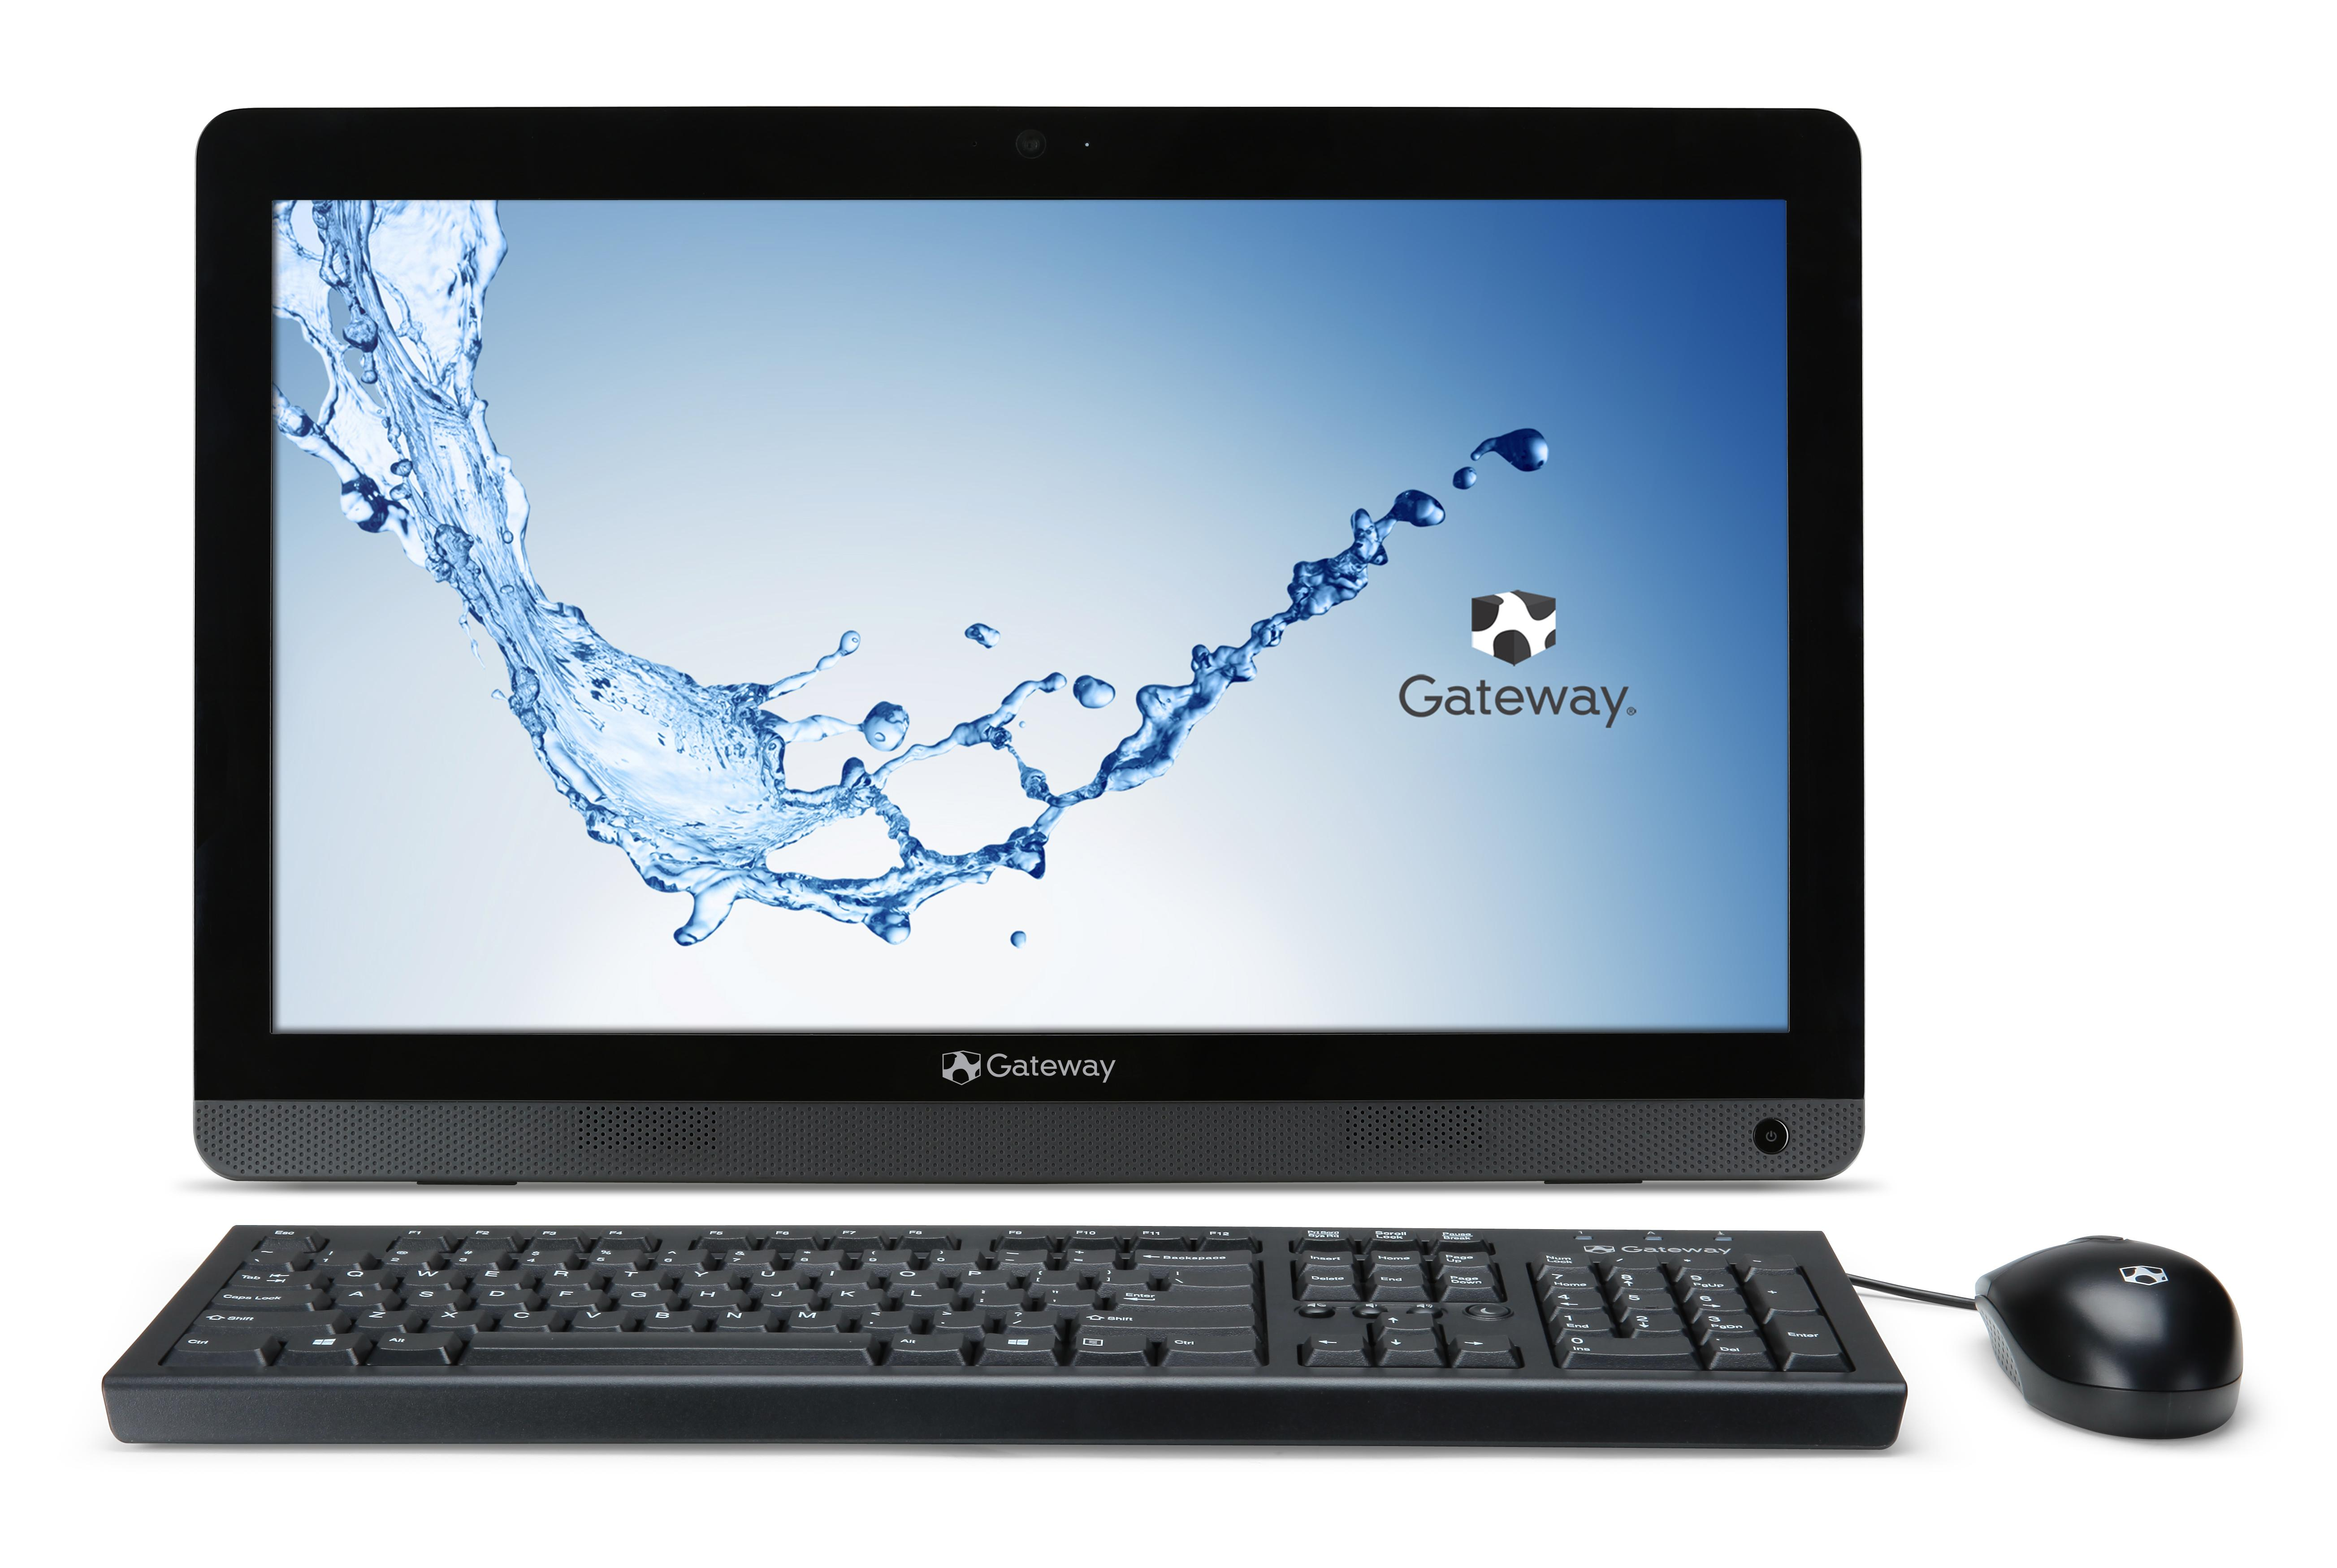 Gateway Announces An Affordable Windows 8 All In One Pc